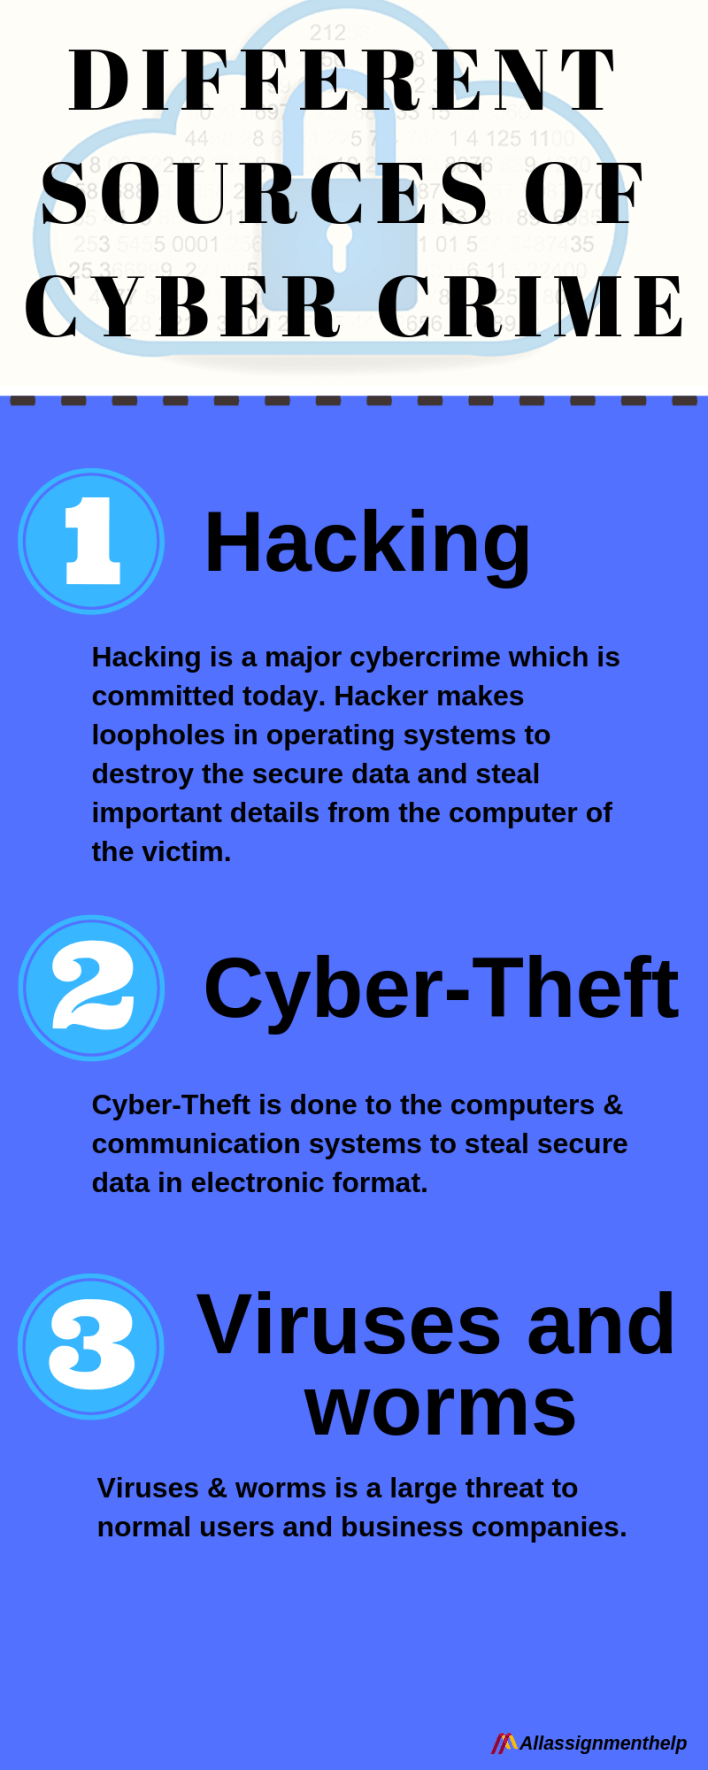 Different sources of Cyber Crime